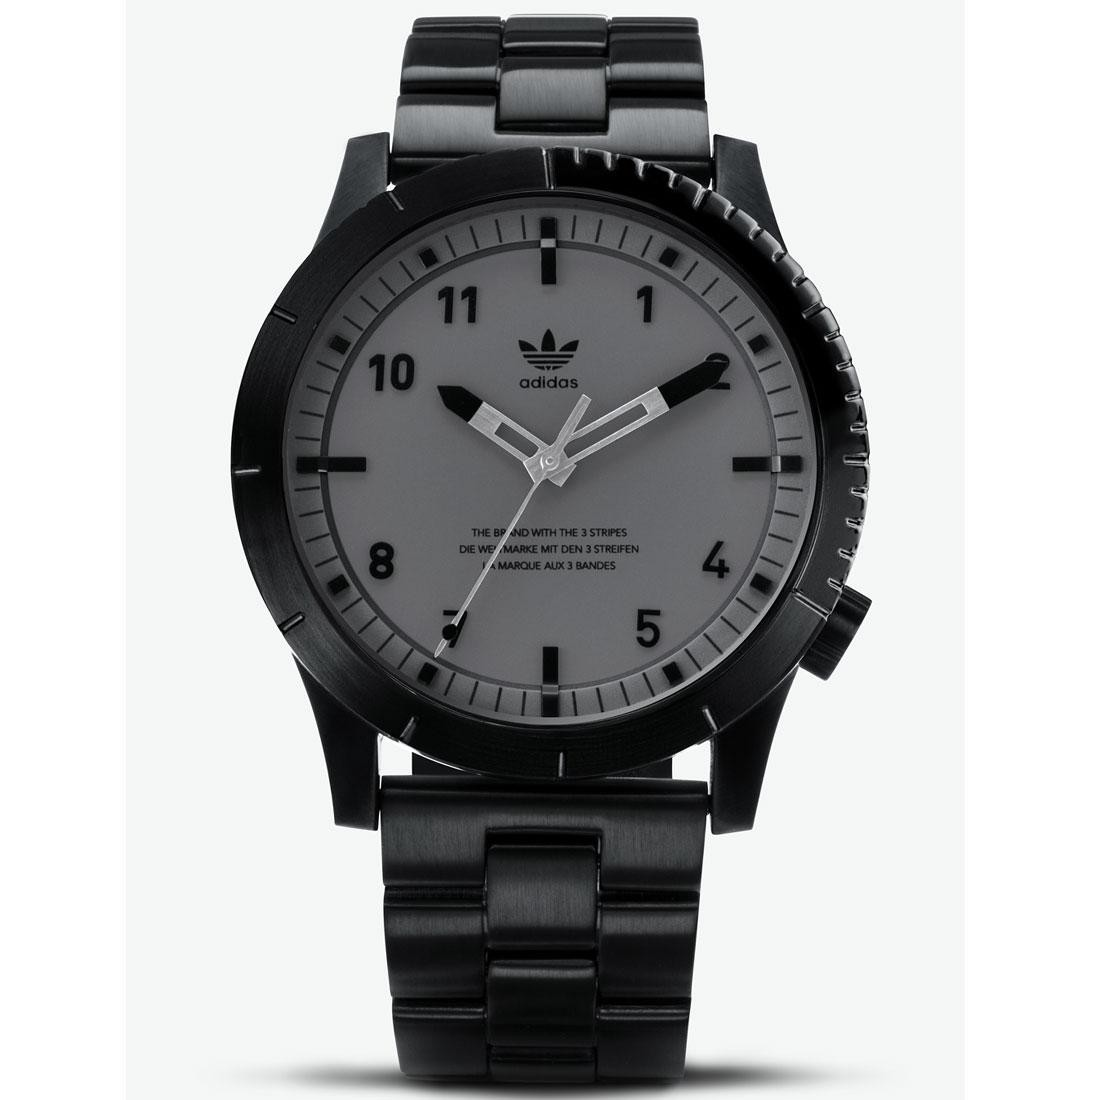 Adidas CYPHER_M1 Z03-017-00 Watch (black / charcoal)